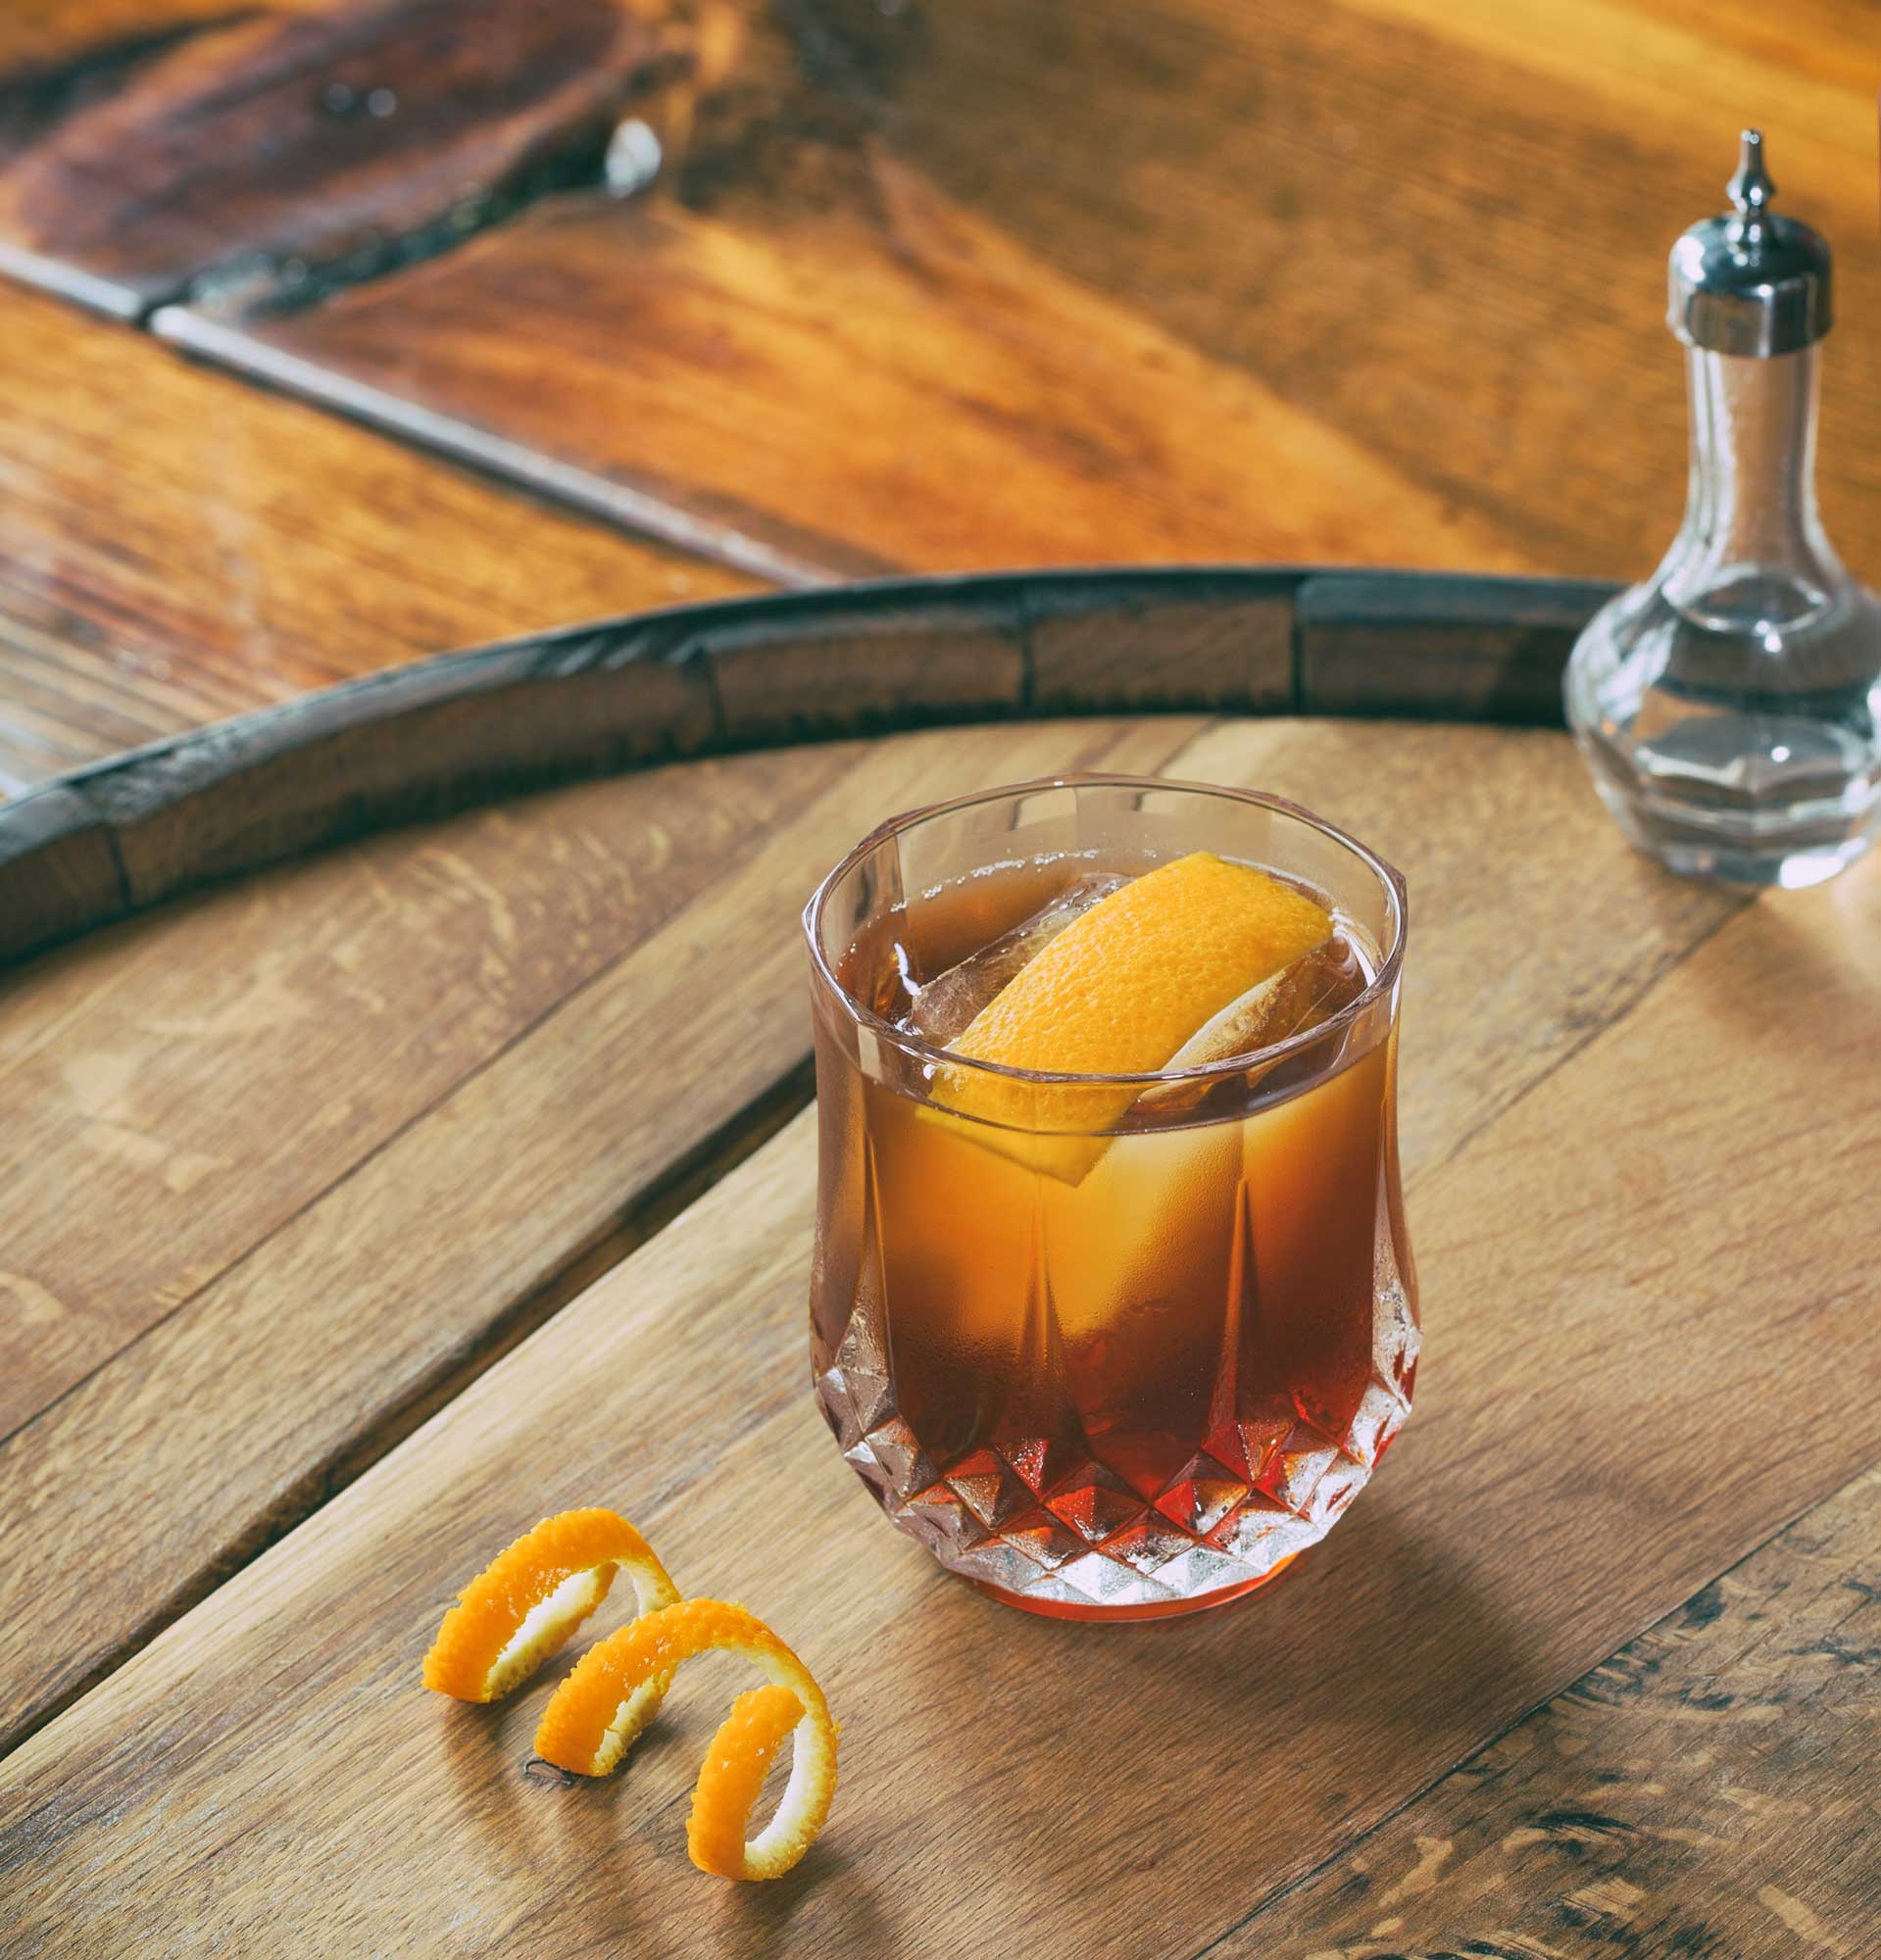 An example of the The Niall, the mixed drink (cocktail), by Ryan Maybee, Manifesto and The Rieger, Kansas City, featuring J. Rieger & Co. Kansas City Whiskey, Cocchi Vermouth di Torino, Aperitivo Cappelletti, Regans' No. 6 Orange Bitters, and Kubler Absinthe Supérieure; photo by Brandon Cummins